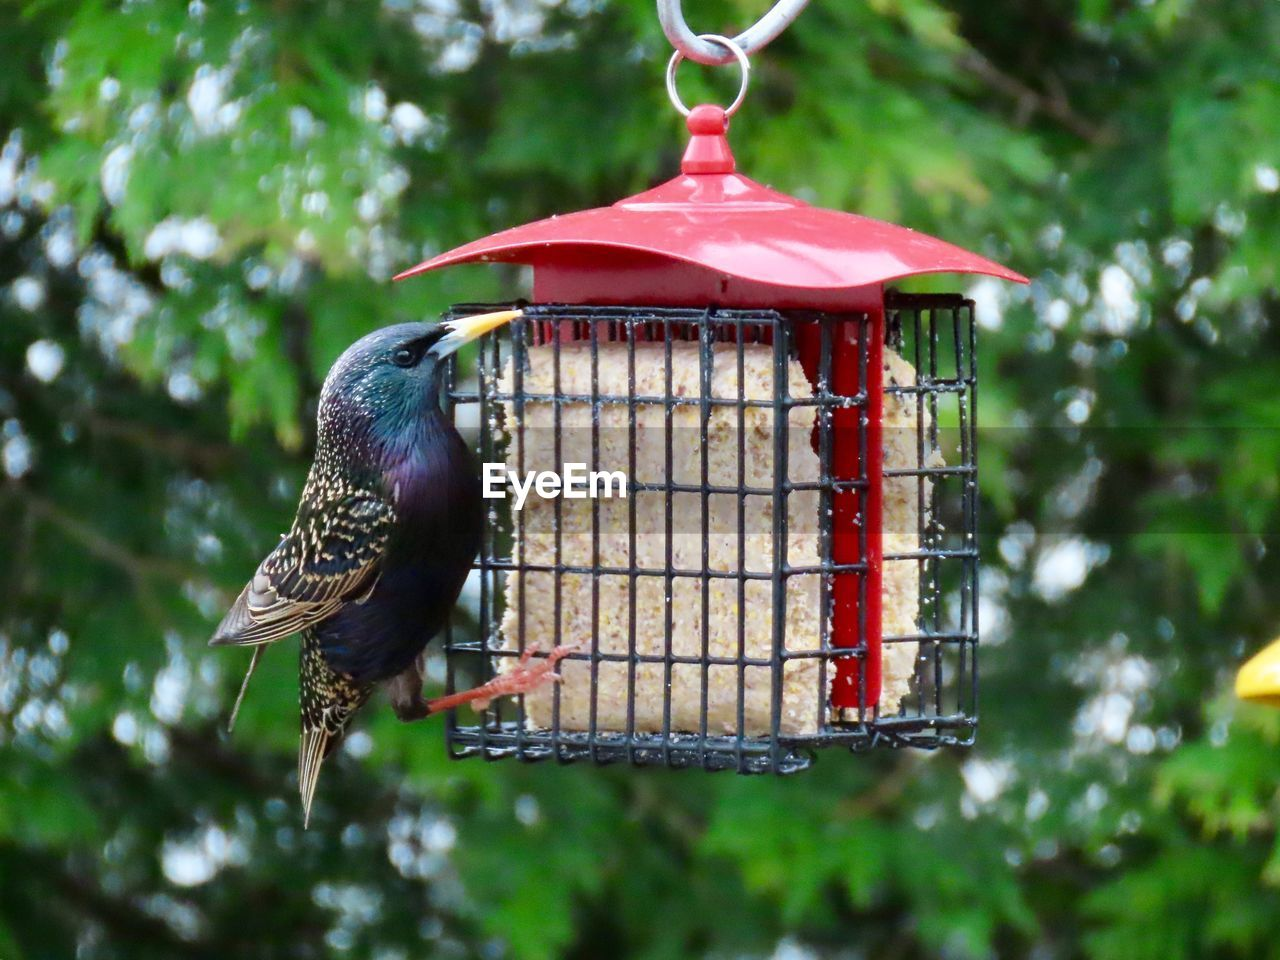 bird, animal, animal themes, vertebrate, bird feeder, animals in the wild, one animal, animal wildlife, focus on foreground, perching, day, nature, no people, plant, hanging, tree, outdoors, red, close-up, woodpecker